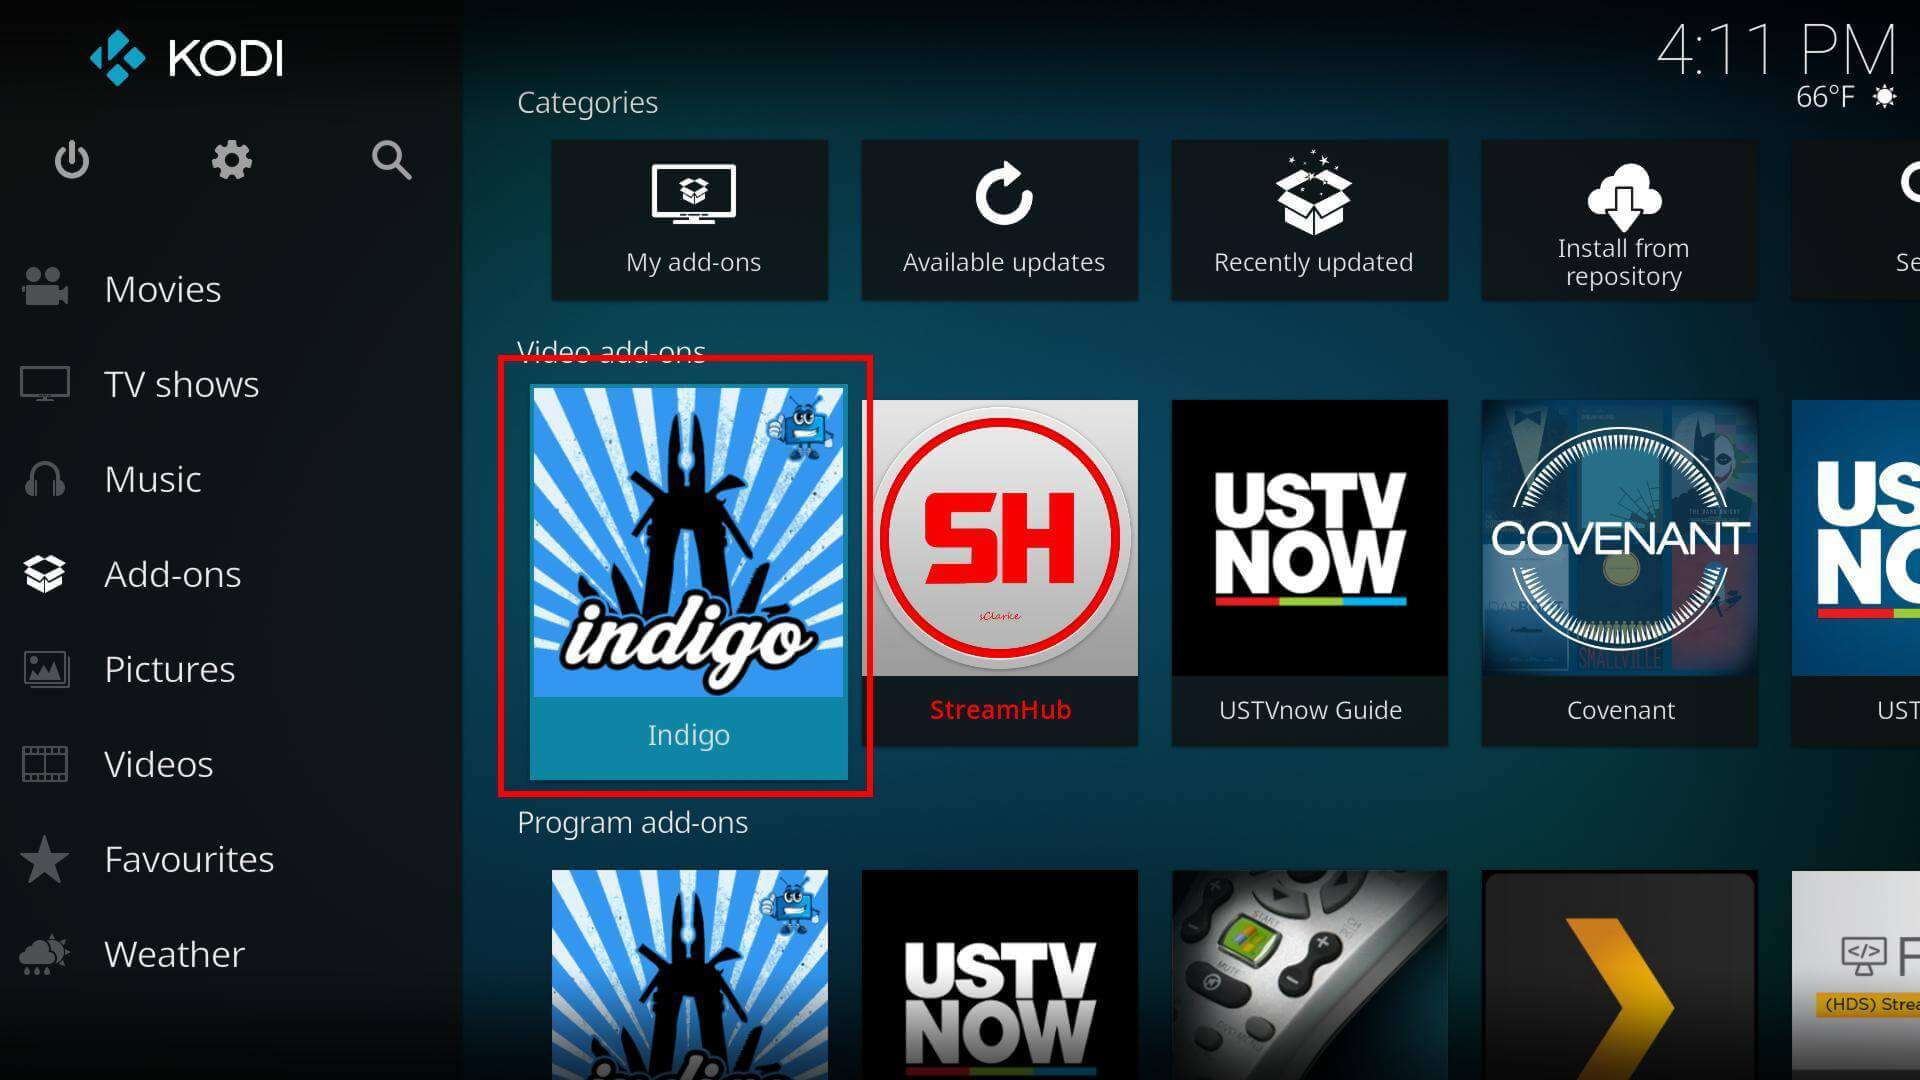 Clone Kodi devices: Duplicate Kodi setup to other devices in